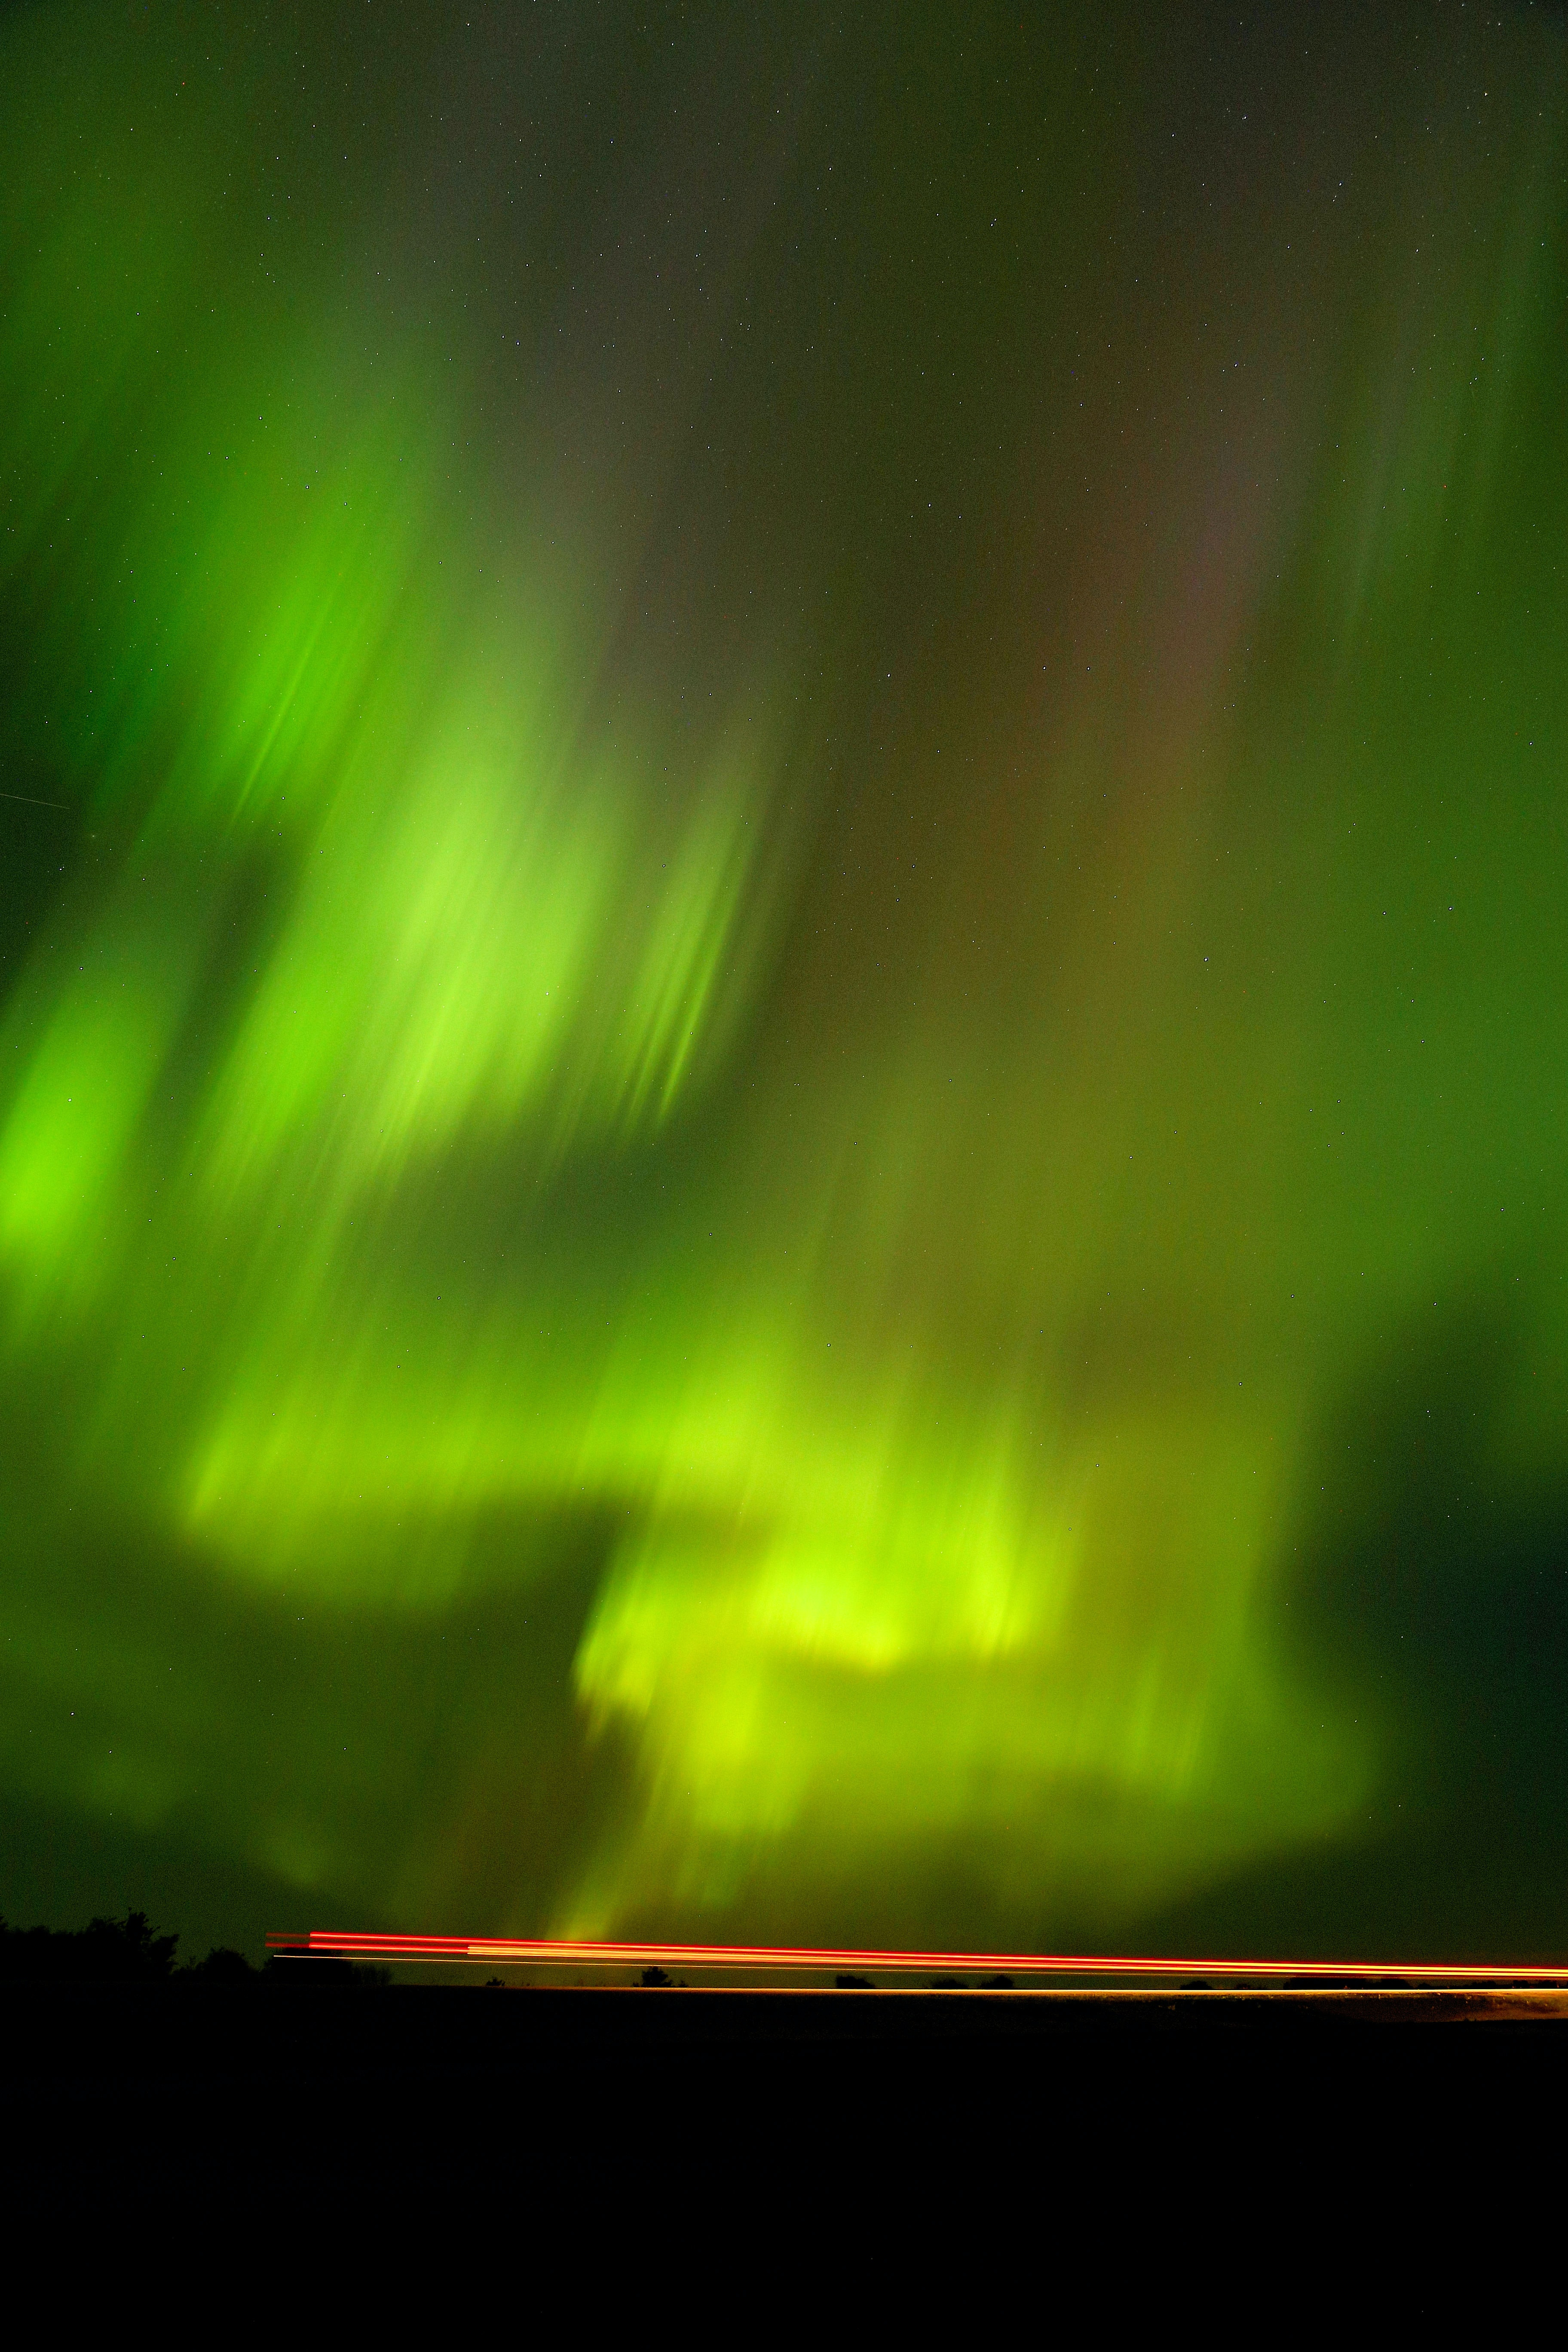 Bright and colorful Northern Lights filling up the entire sky over Saskatchewan